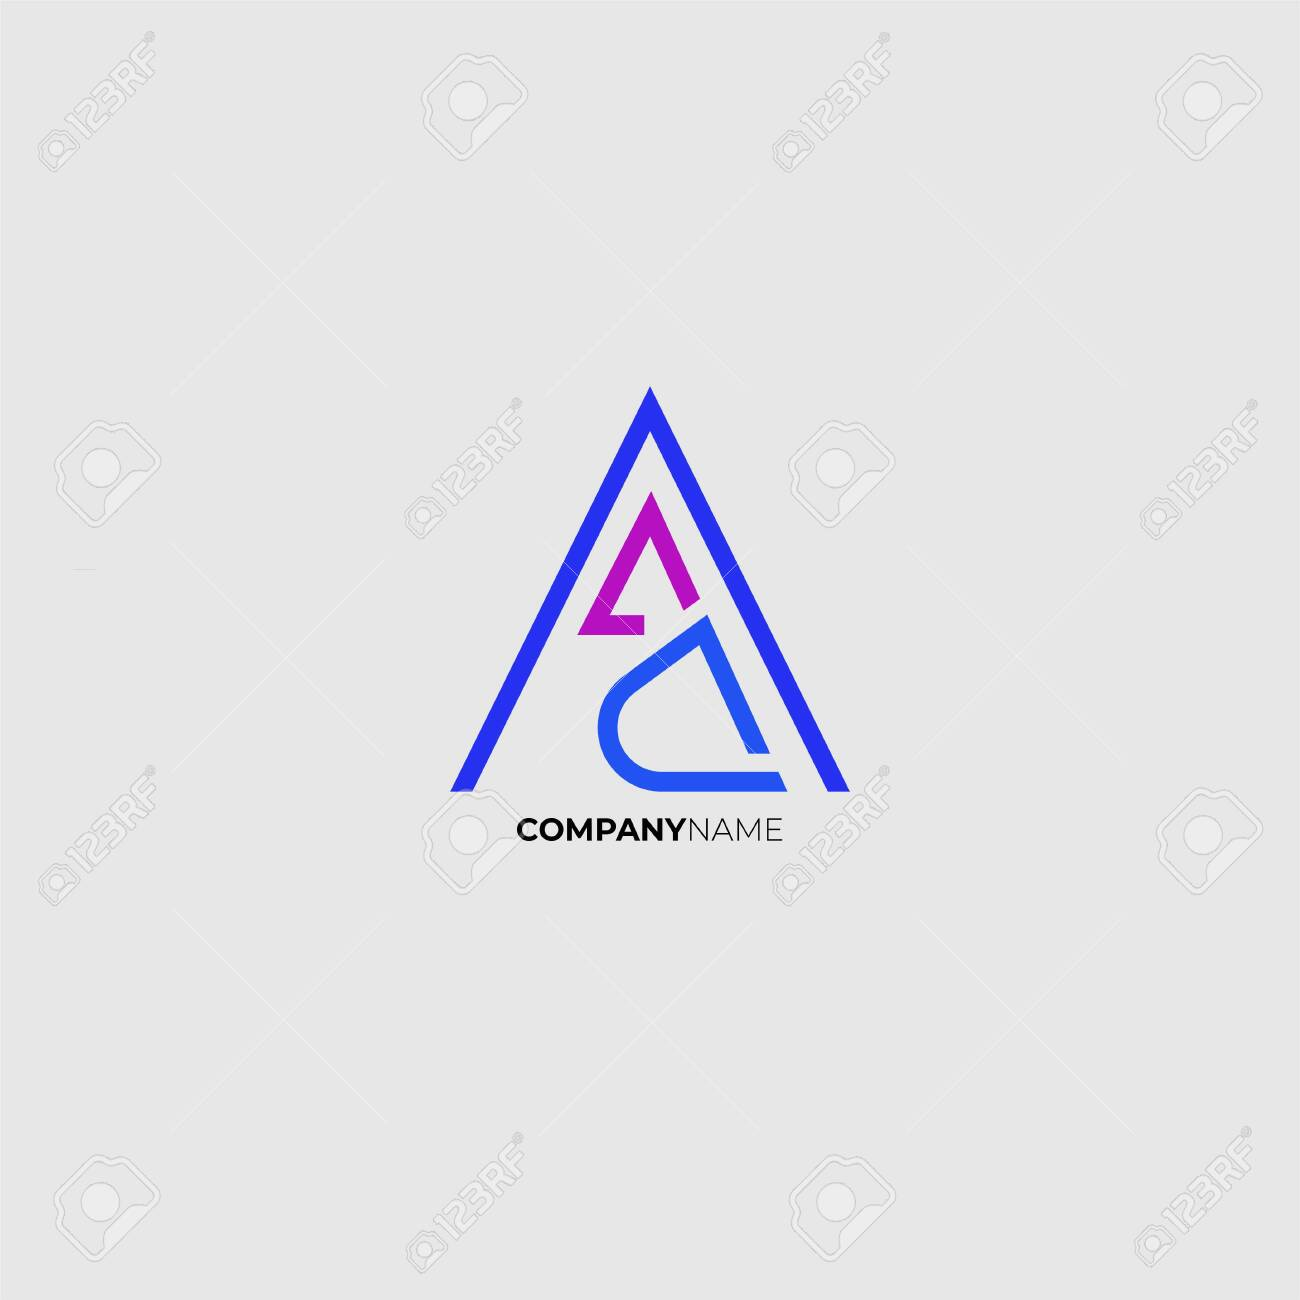 Letter A Logo Monogram For Business Identity Branding Company Royalty Free Cliparts Vectors And Stock Illustration Image 148120332